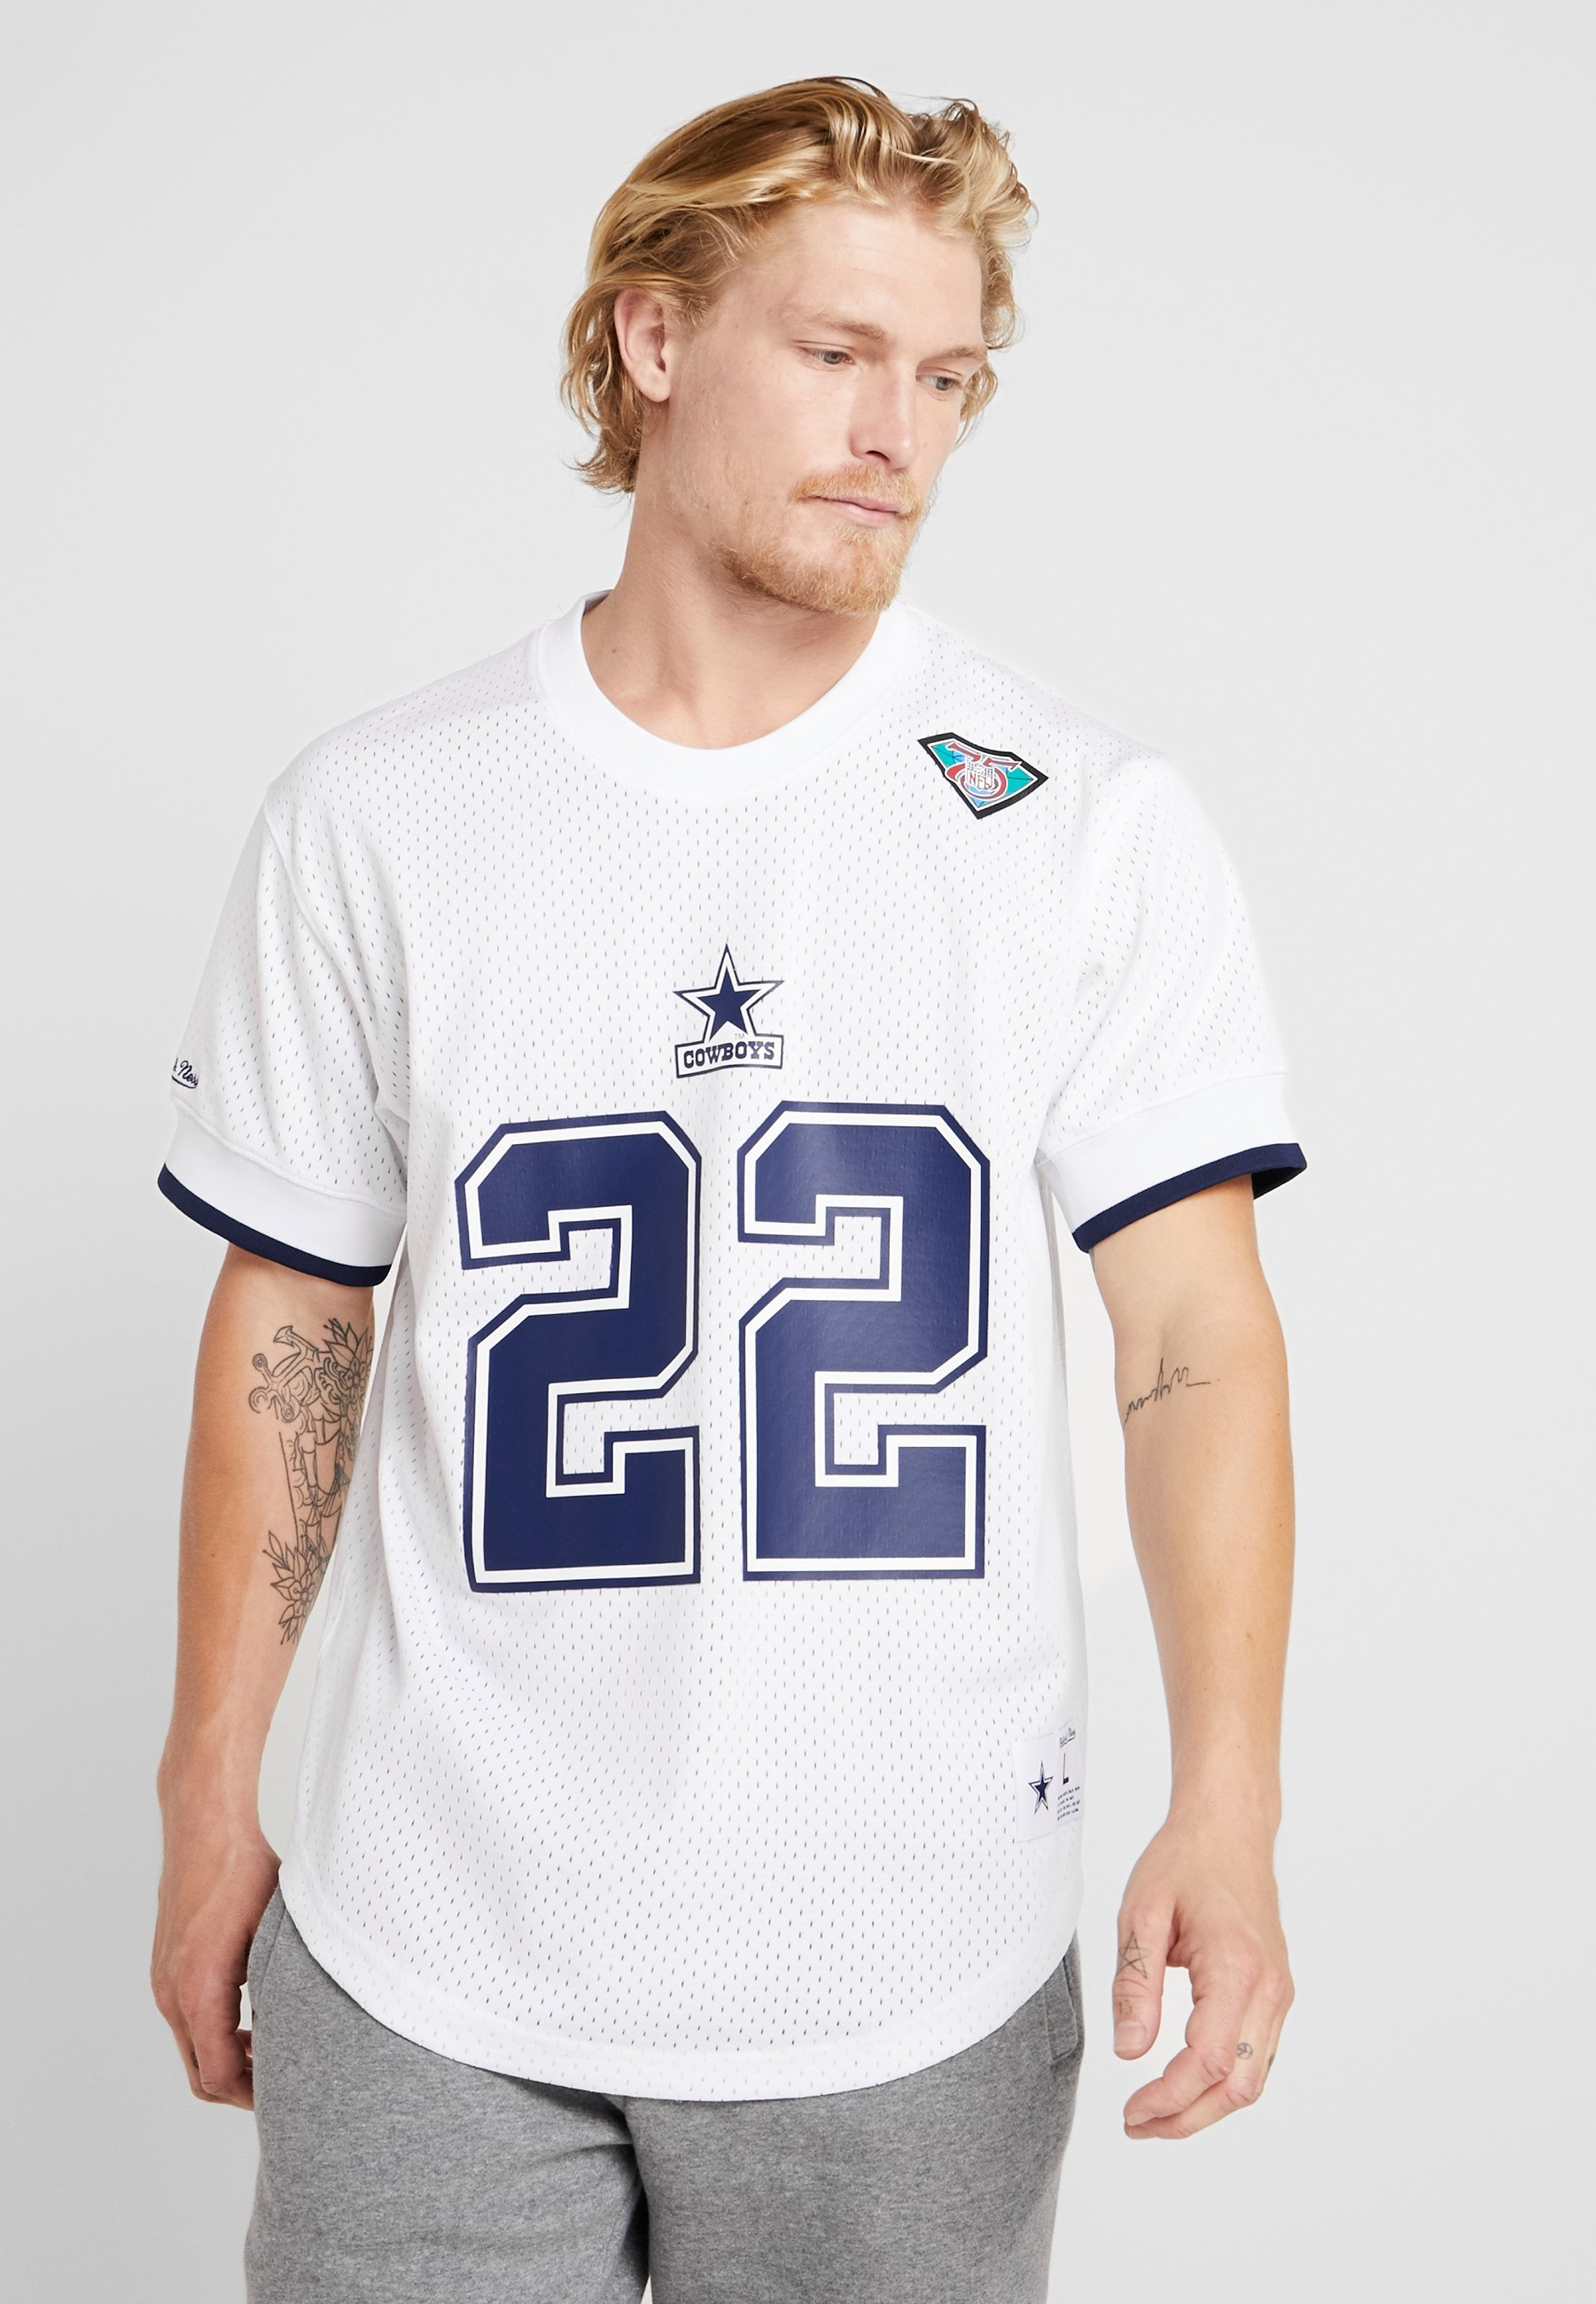 Crew NeckT Nfl Ness White Mitchellamp; Number Name Stampa shirt Con f6Yvg7by